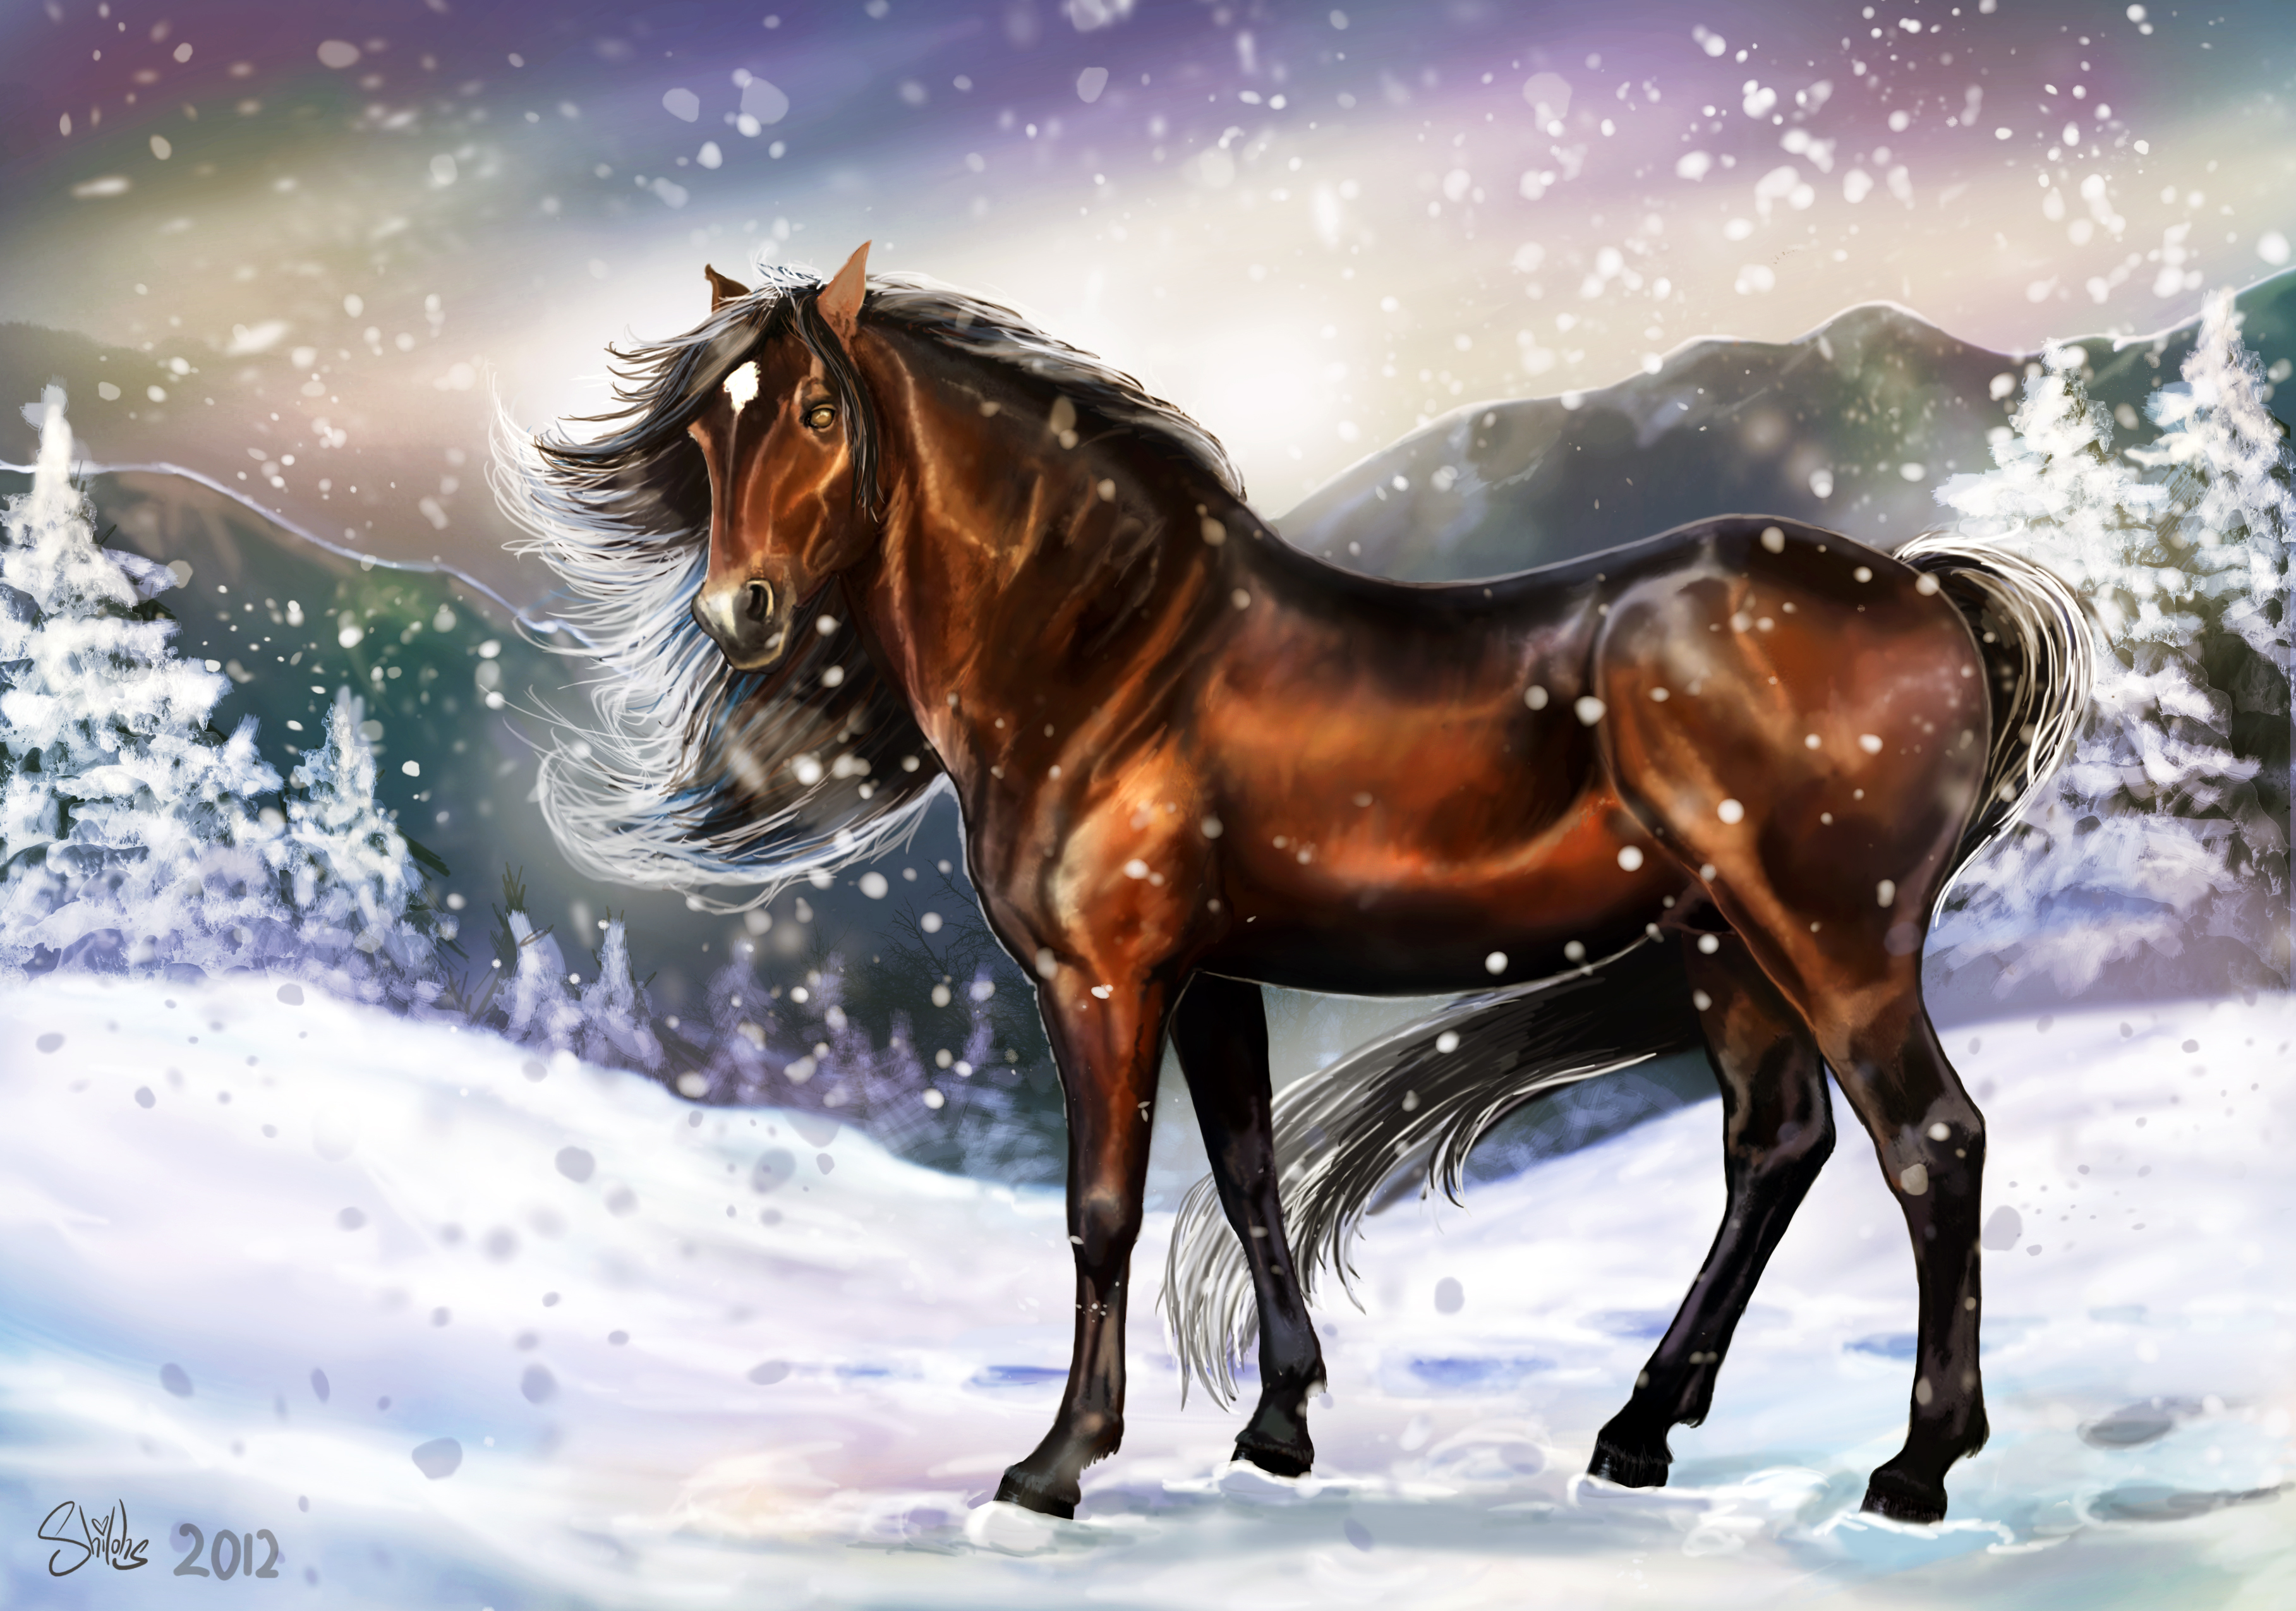 horse mane animals eyes winter cold snow footprints wallpapers 3634x2550